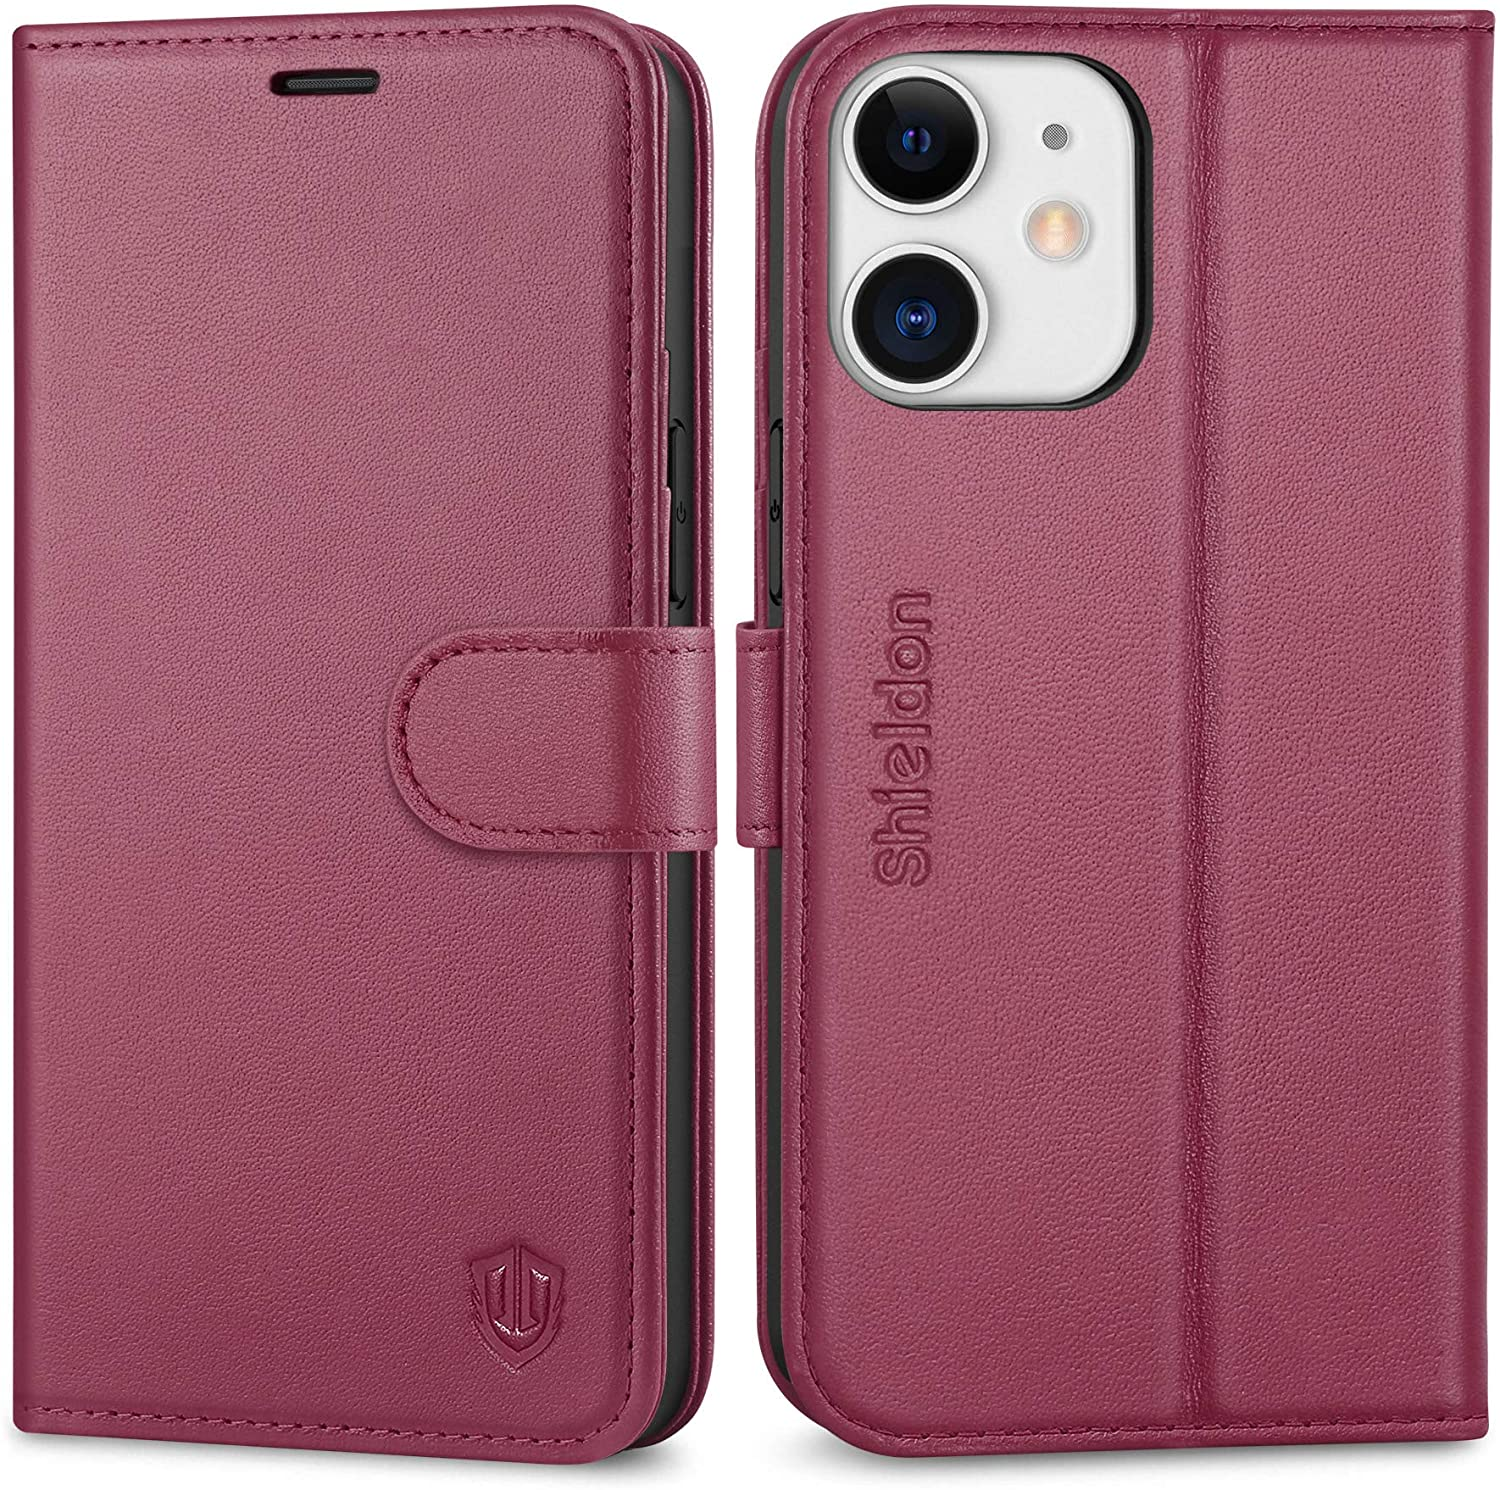 SHIELDON iPhone 12 Mini Case, Genuine Leather Wallet Case [RFID Blocking Credit Card Holder] Magnetic Closure Flip Book Cover Shockproof Case Compatible with iPhone 12 Mini 5G (5.4 2020) - Red Violet